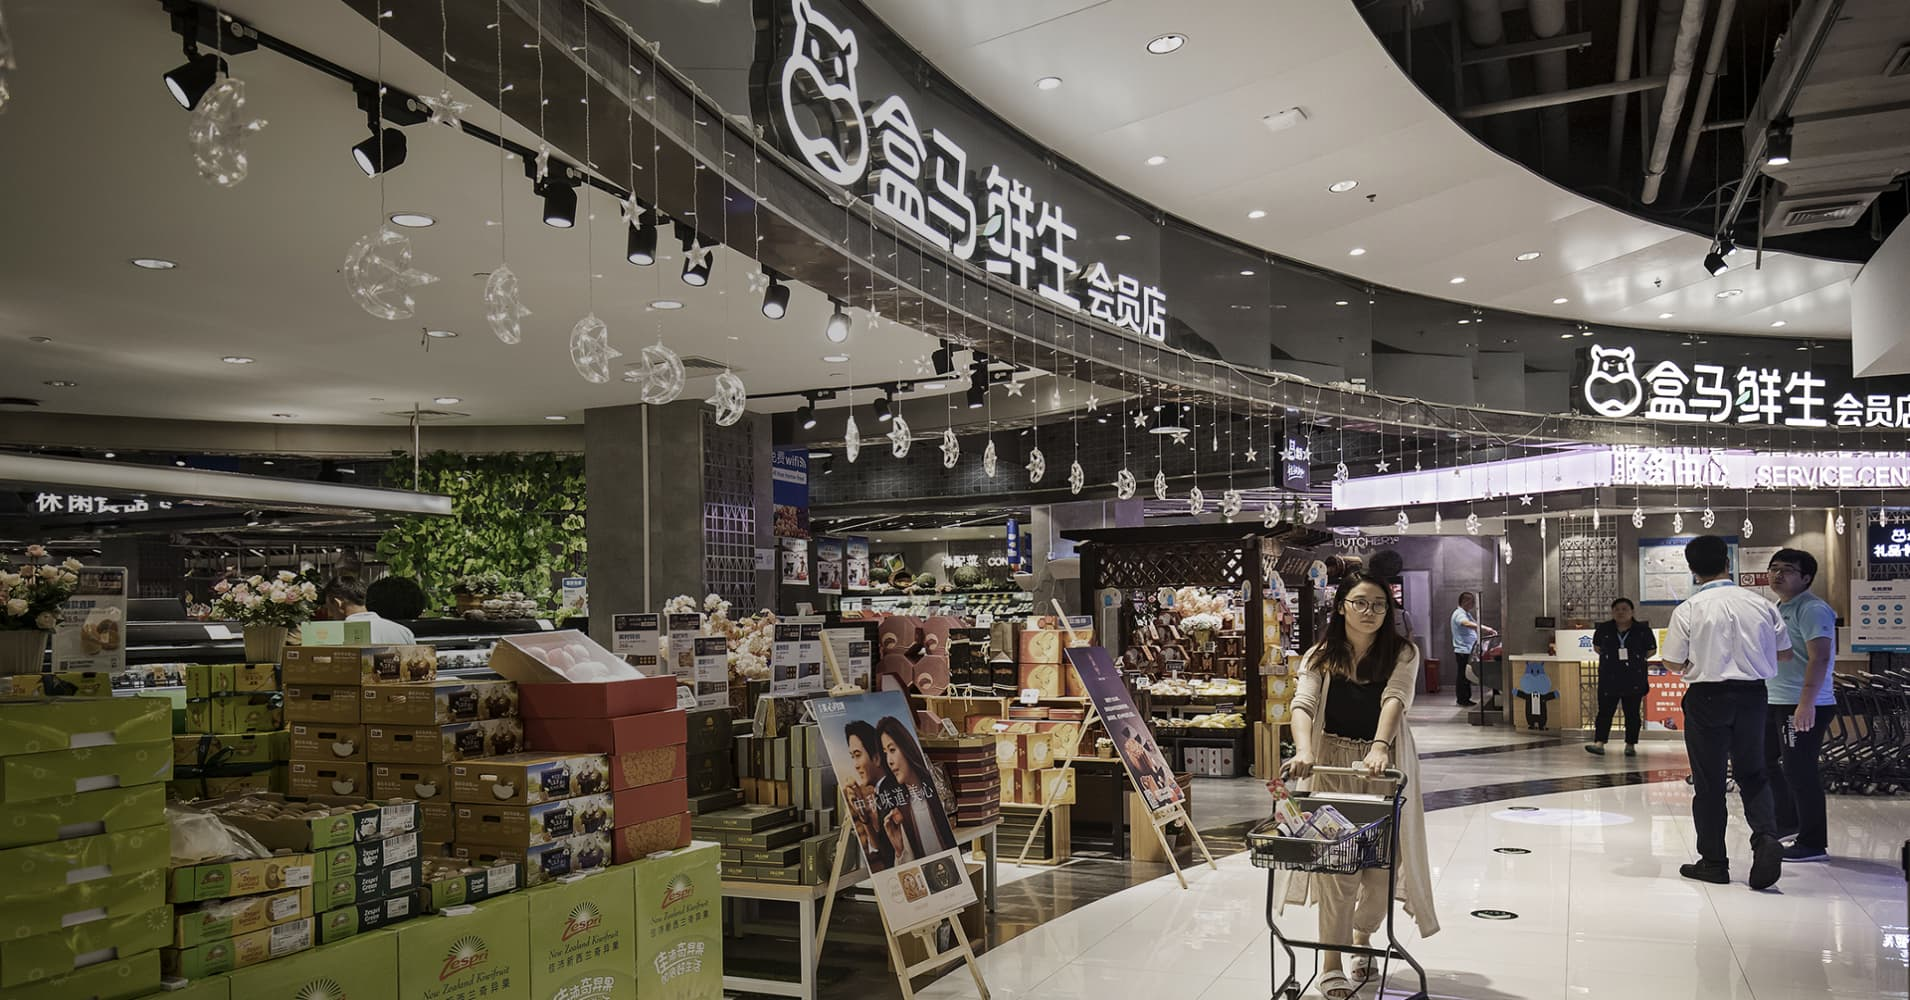 We visited Alibaba's new retail store, sweeping through China